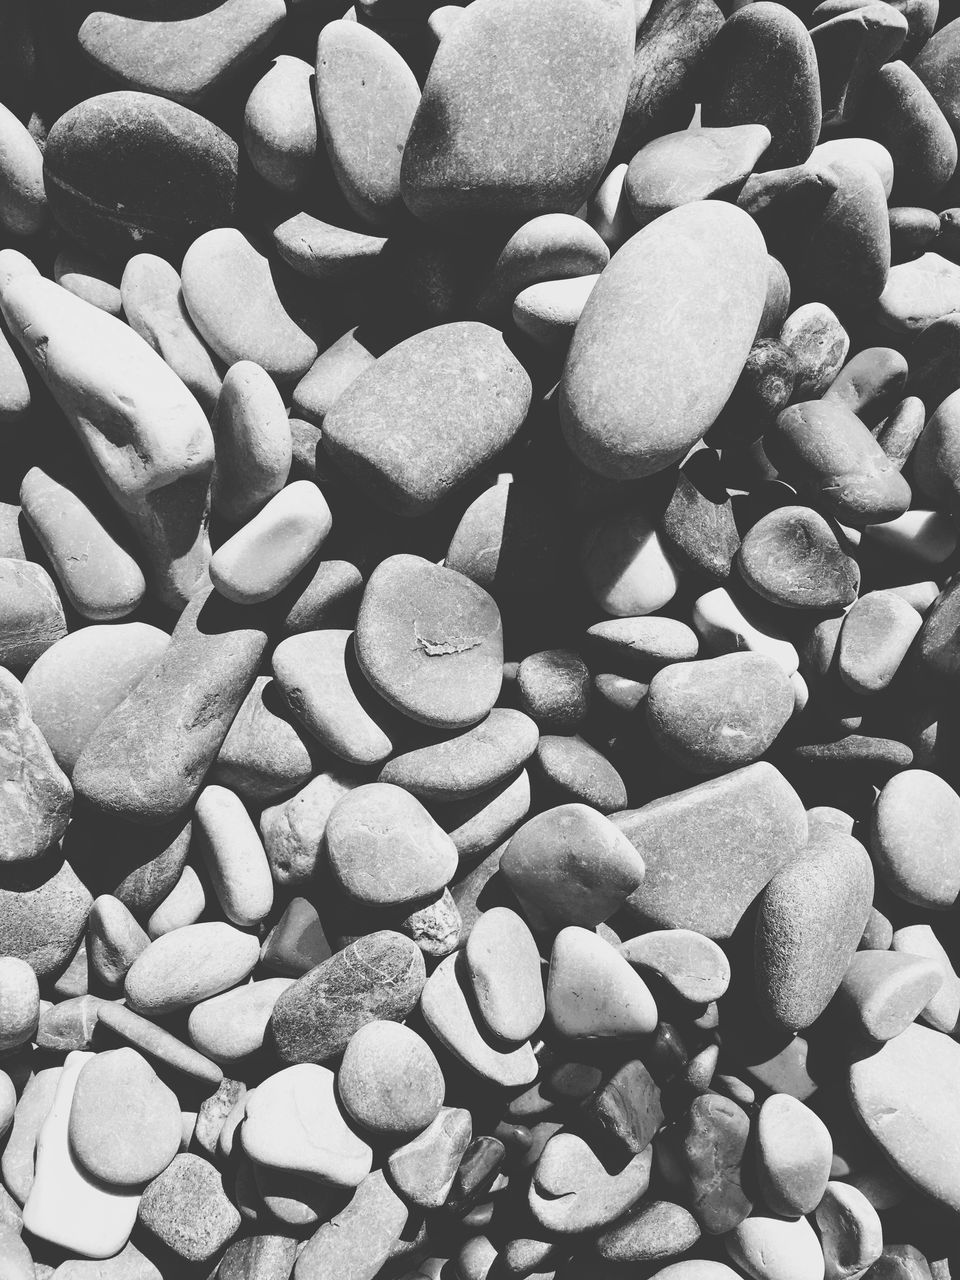 pebble, large group of objects, full frame, abundance, backgrounds, no people, pebble beach, beach, nature, close-up, outdoors, day